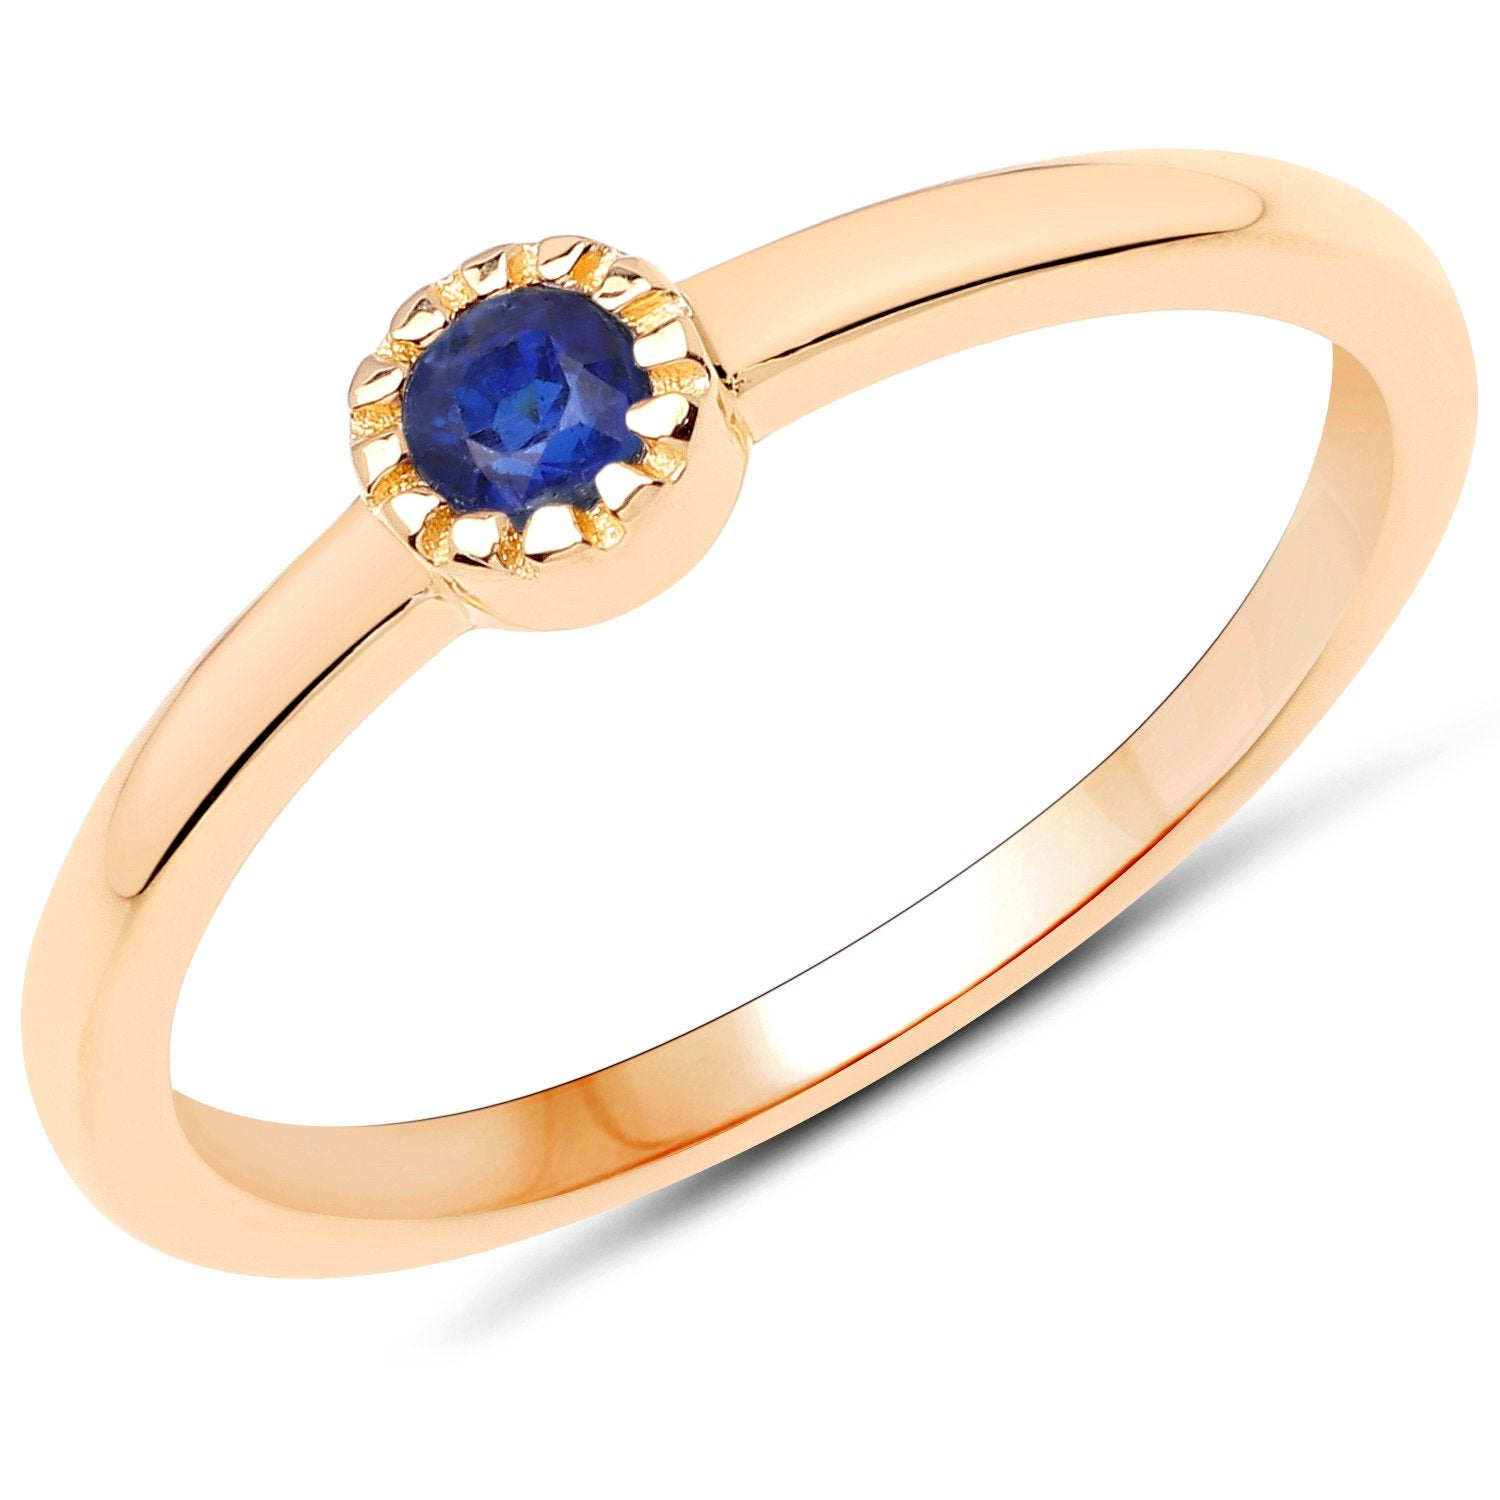 LoveHuang 0.13 Carats Genuine Kyanite Stacking Ring Solid .925 Sterling Silver With 18KT Yellow Gold Plating